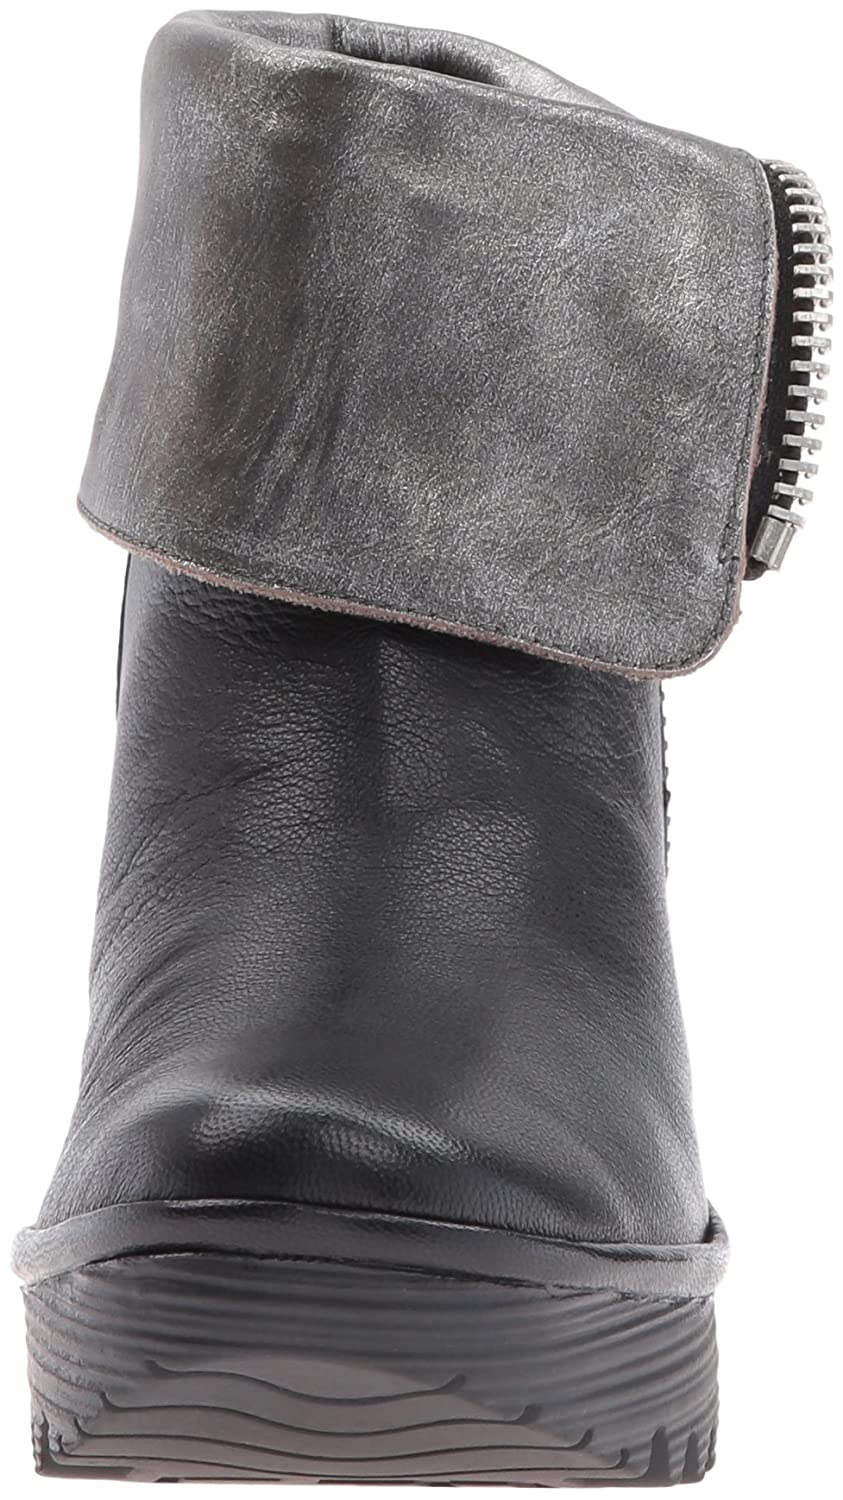 FLY London Women's Yex668fly EU/7.5-8 Ankle Bootie B01CR1L3KU 38 EU/7.5-8 Yex668fly M US|Black/Ant Silver Mousse/Bardana a77818